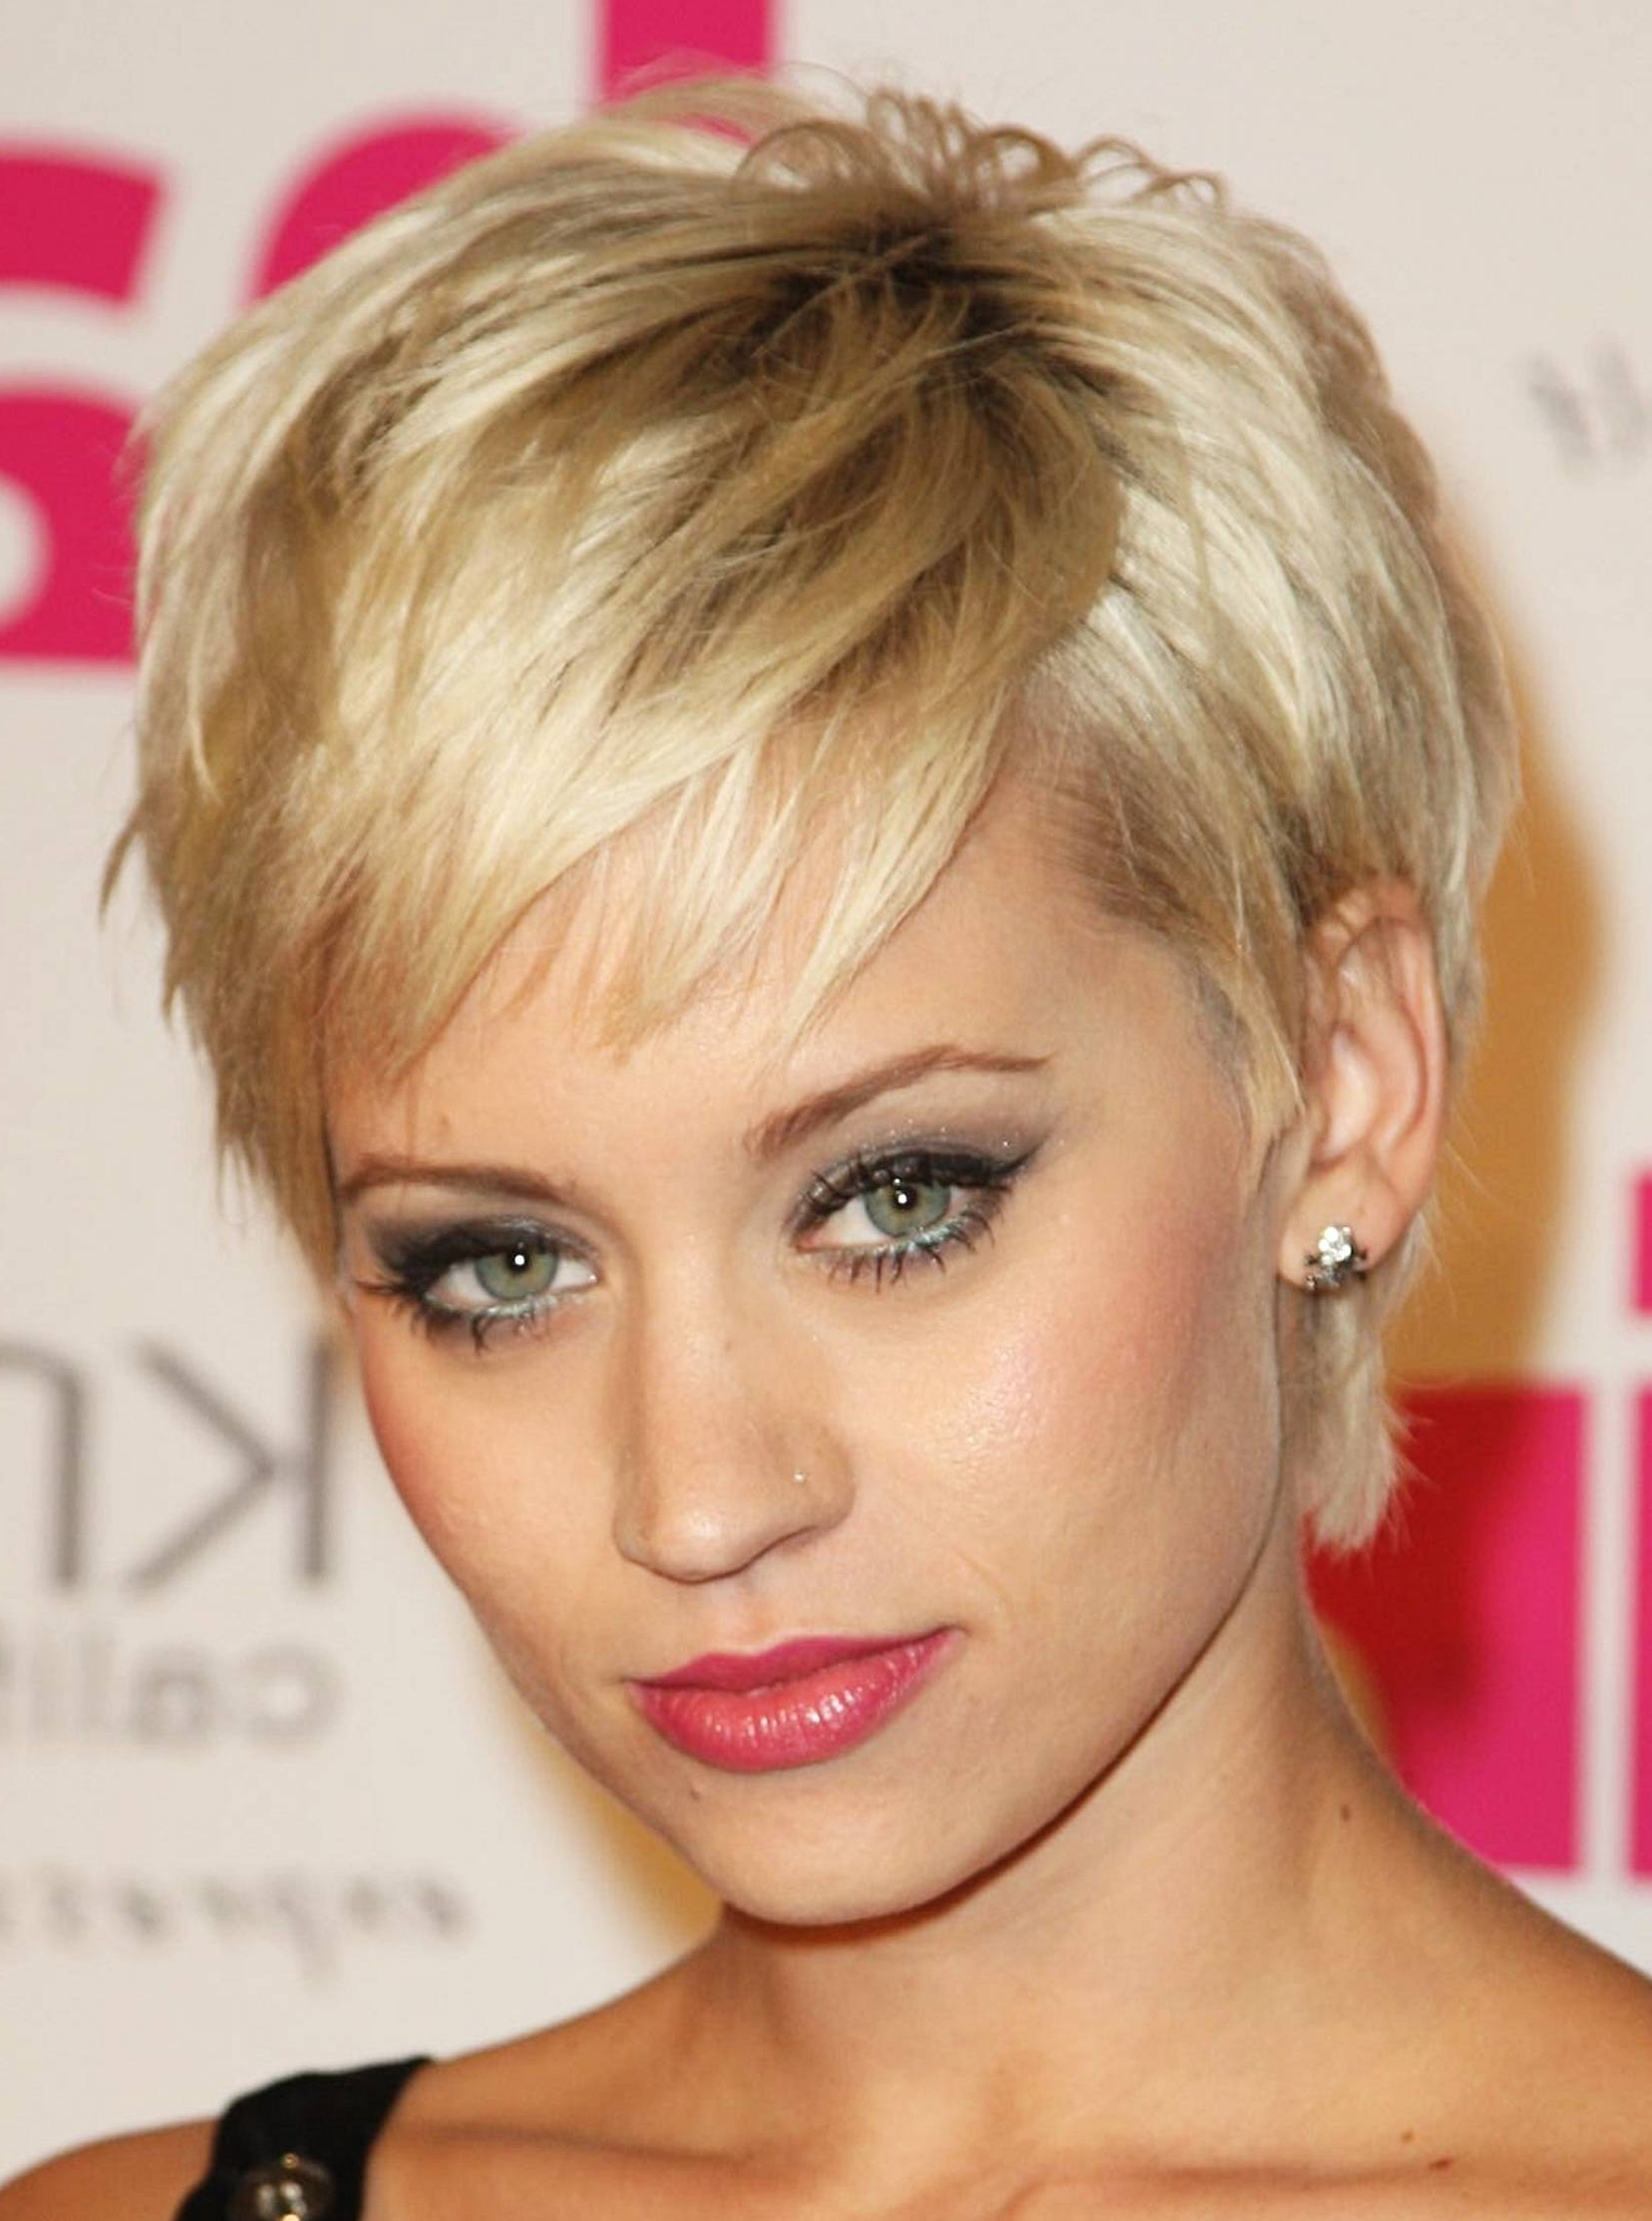 Hairstyles For Short Hair Over 50 Short Hair For Women Over 50 Maomaotxt